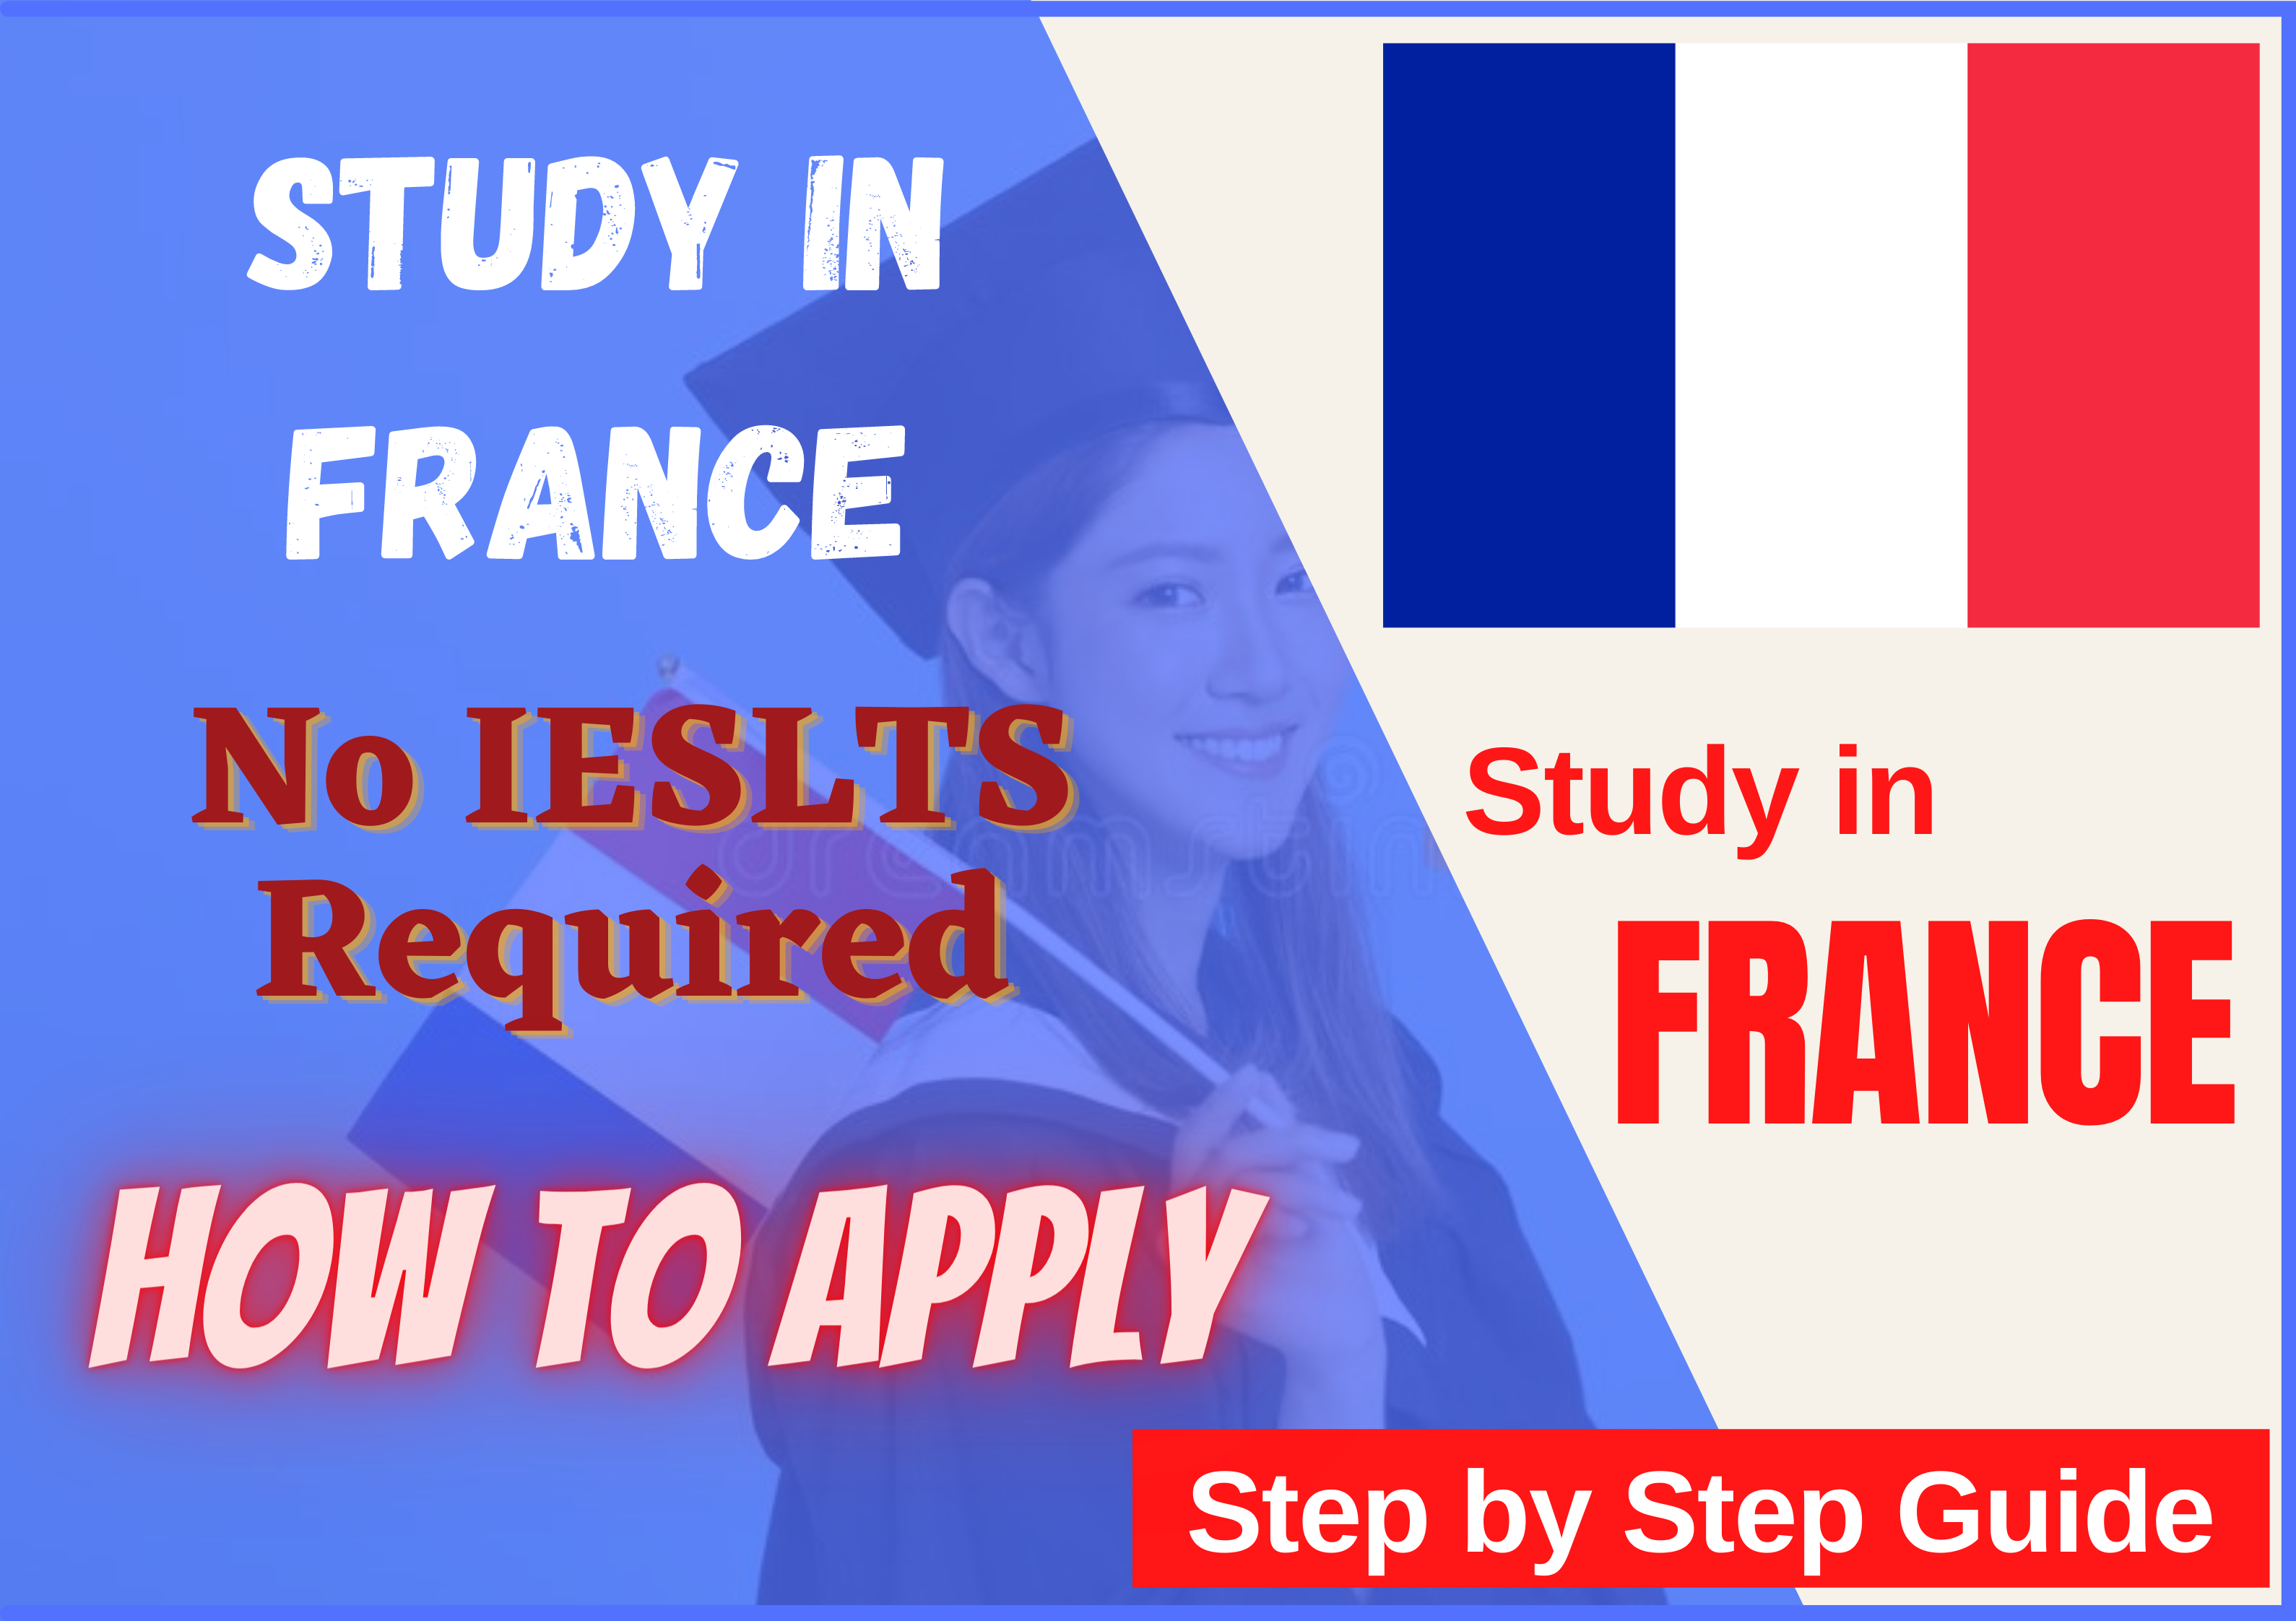 Study in France without IELTS in 2021 | How to Guide